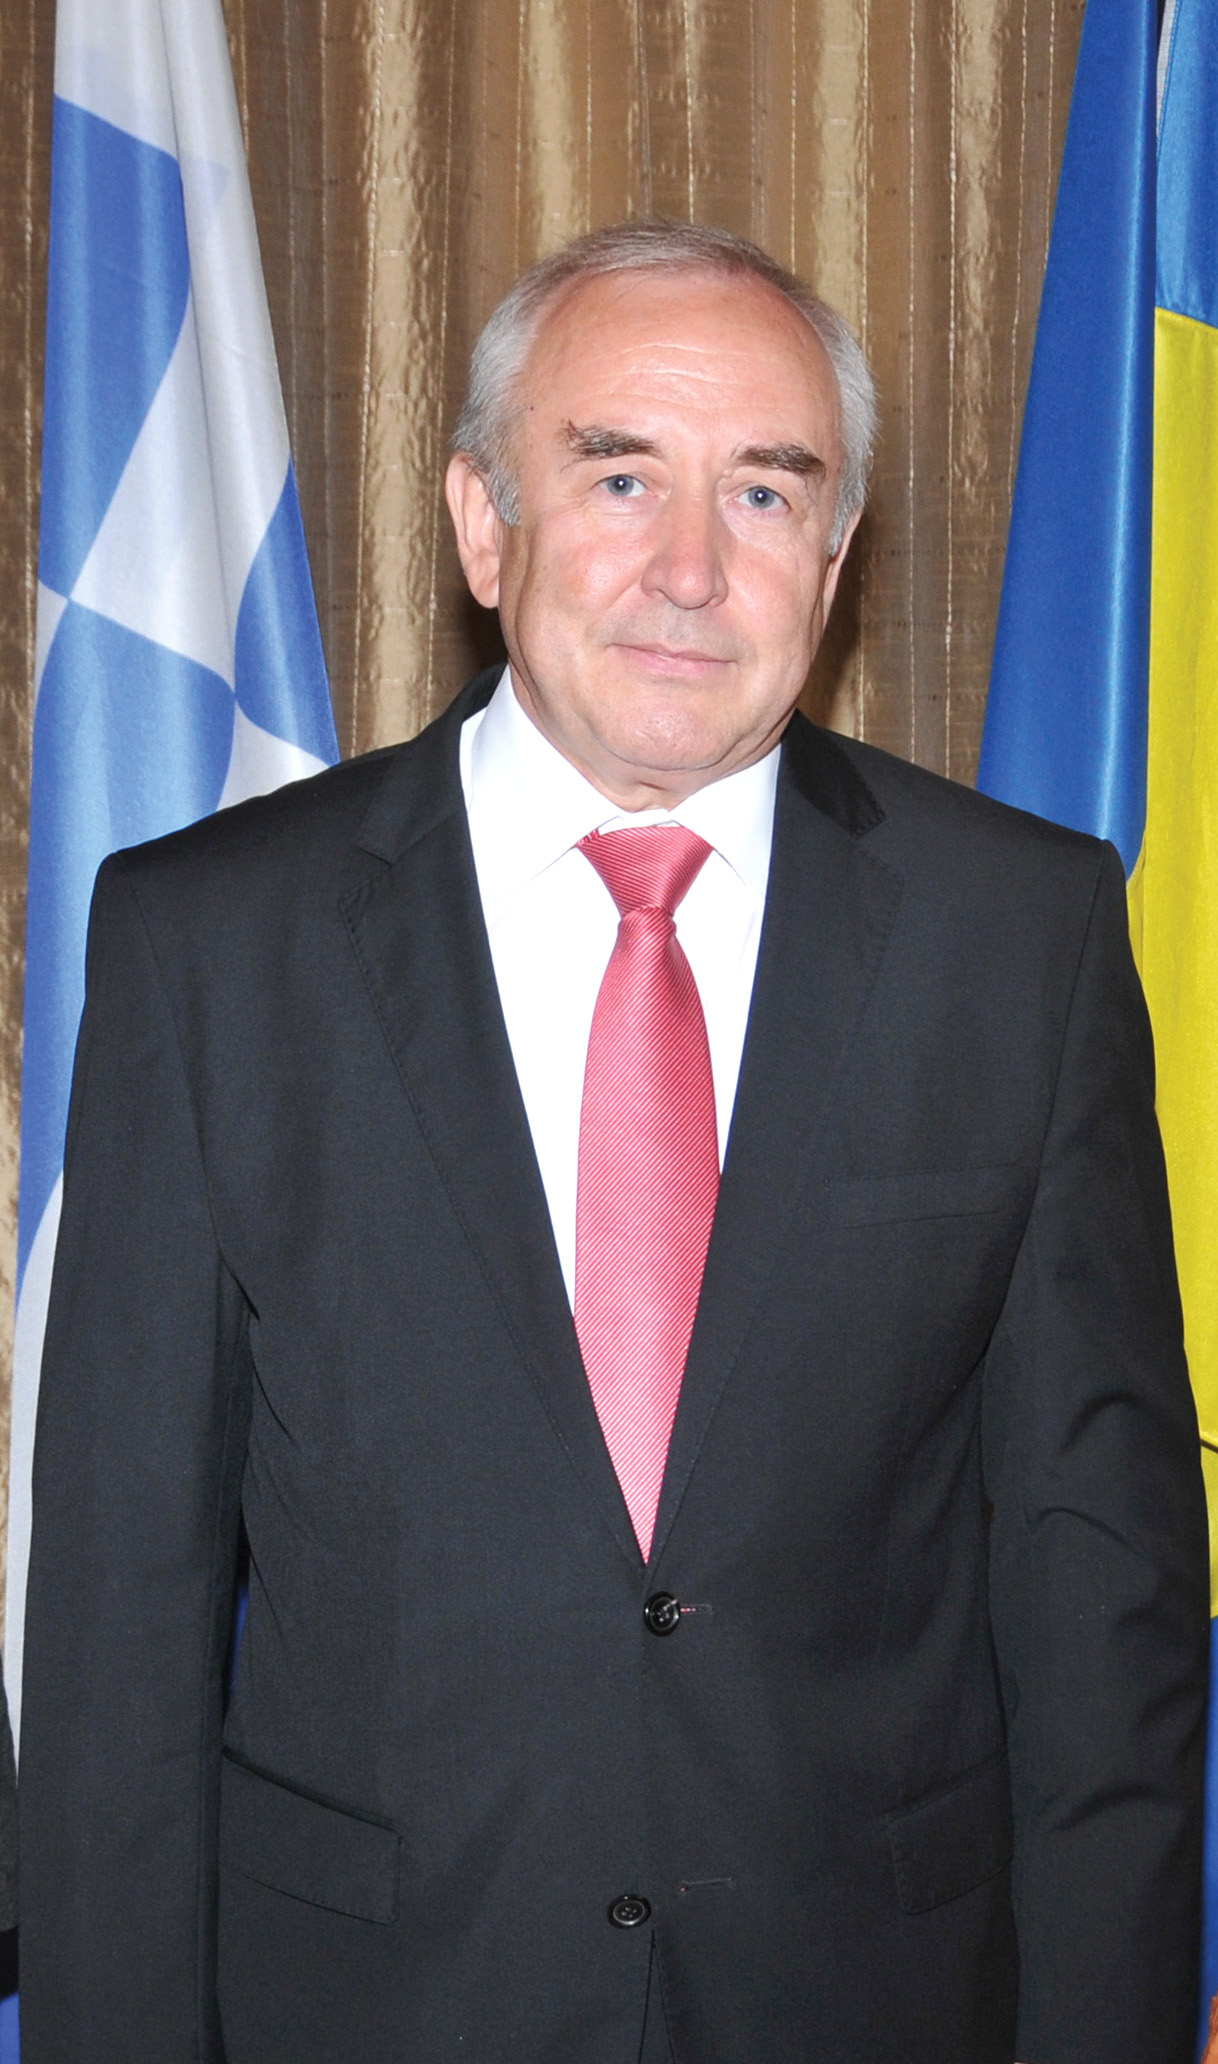 H.E. the Ambassador of Ukraine to the Hellenic Republic, Volodymyr Shkurov